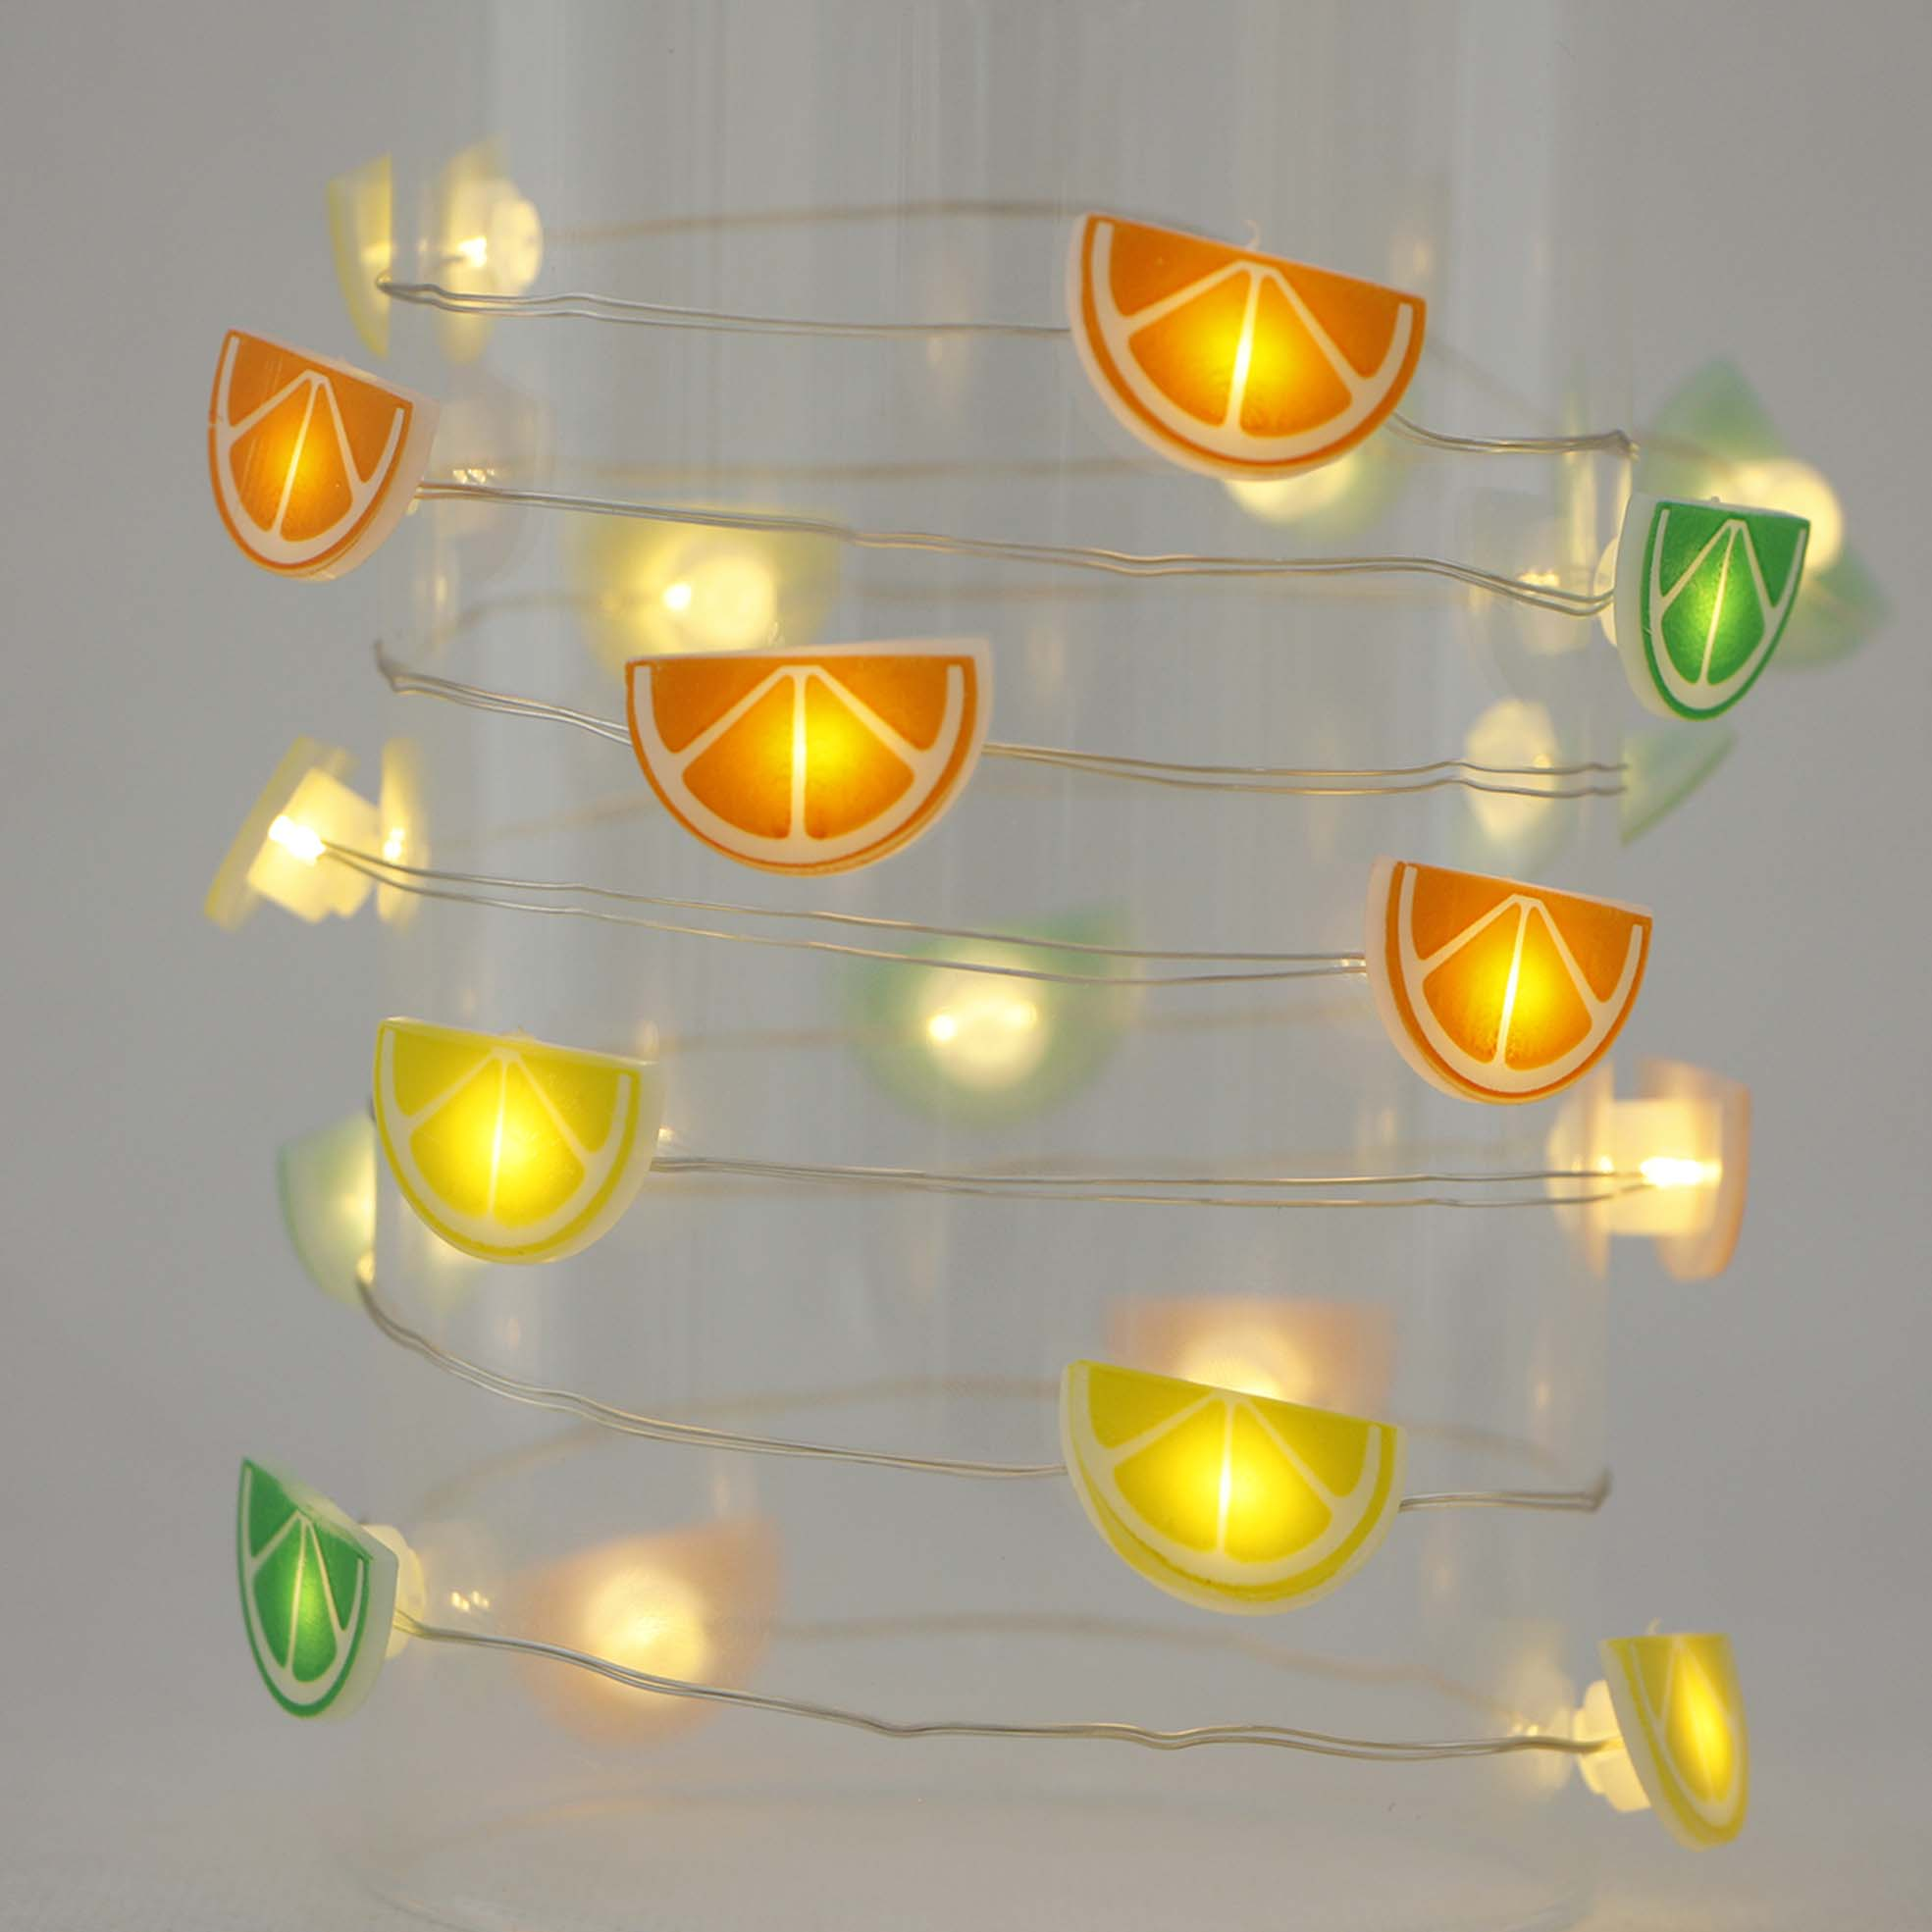 Color Coated Aluminum Sheet Decorative Patio String Light -